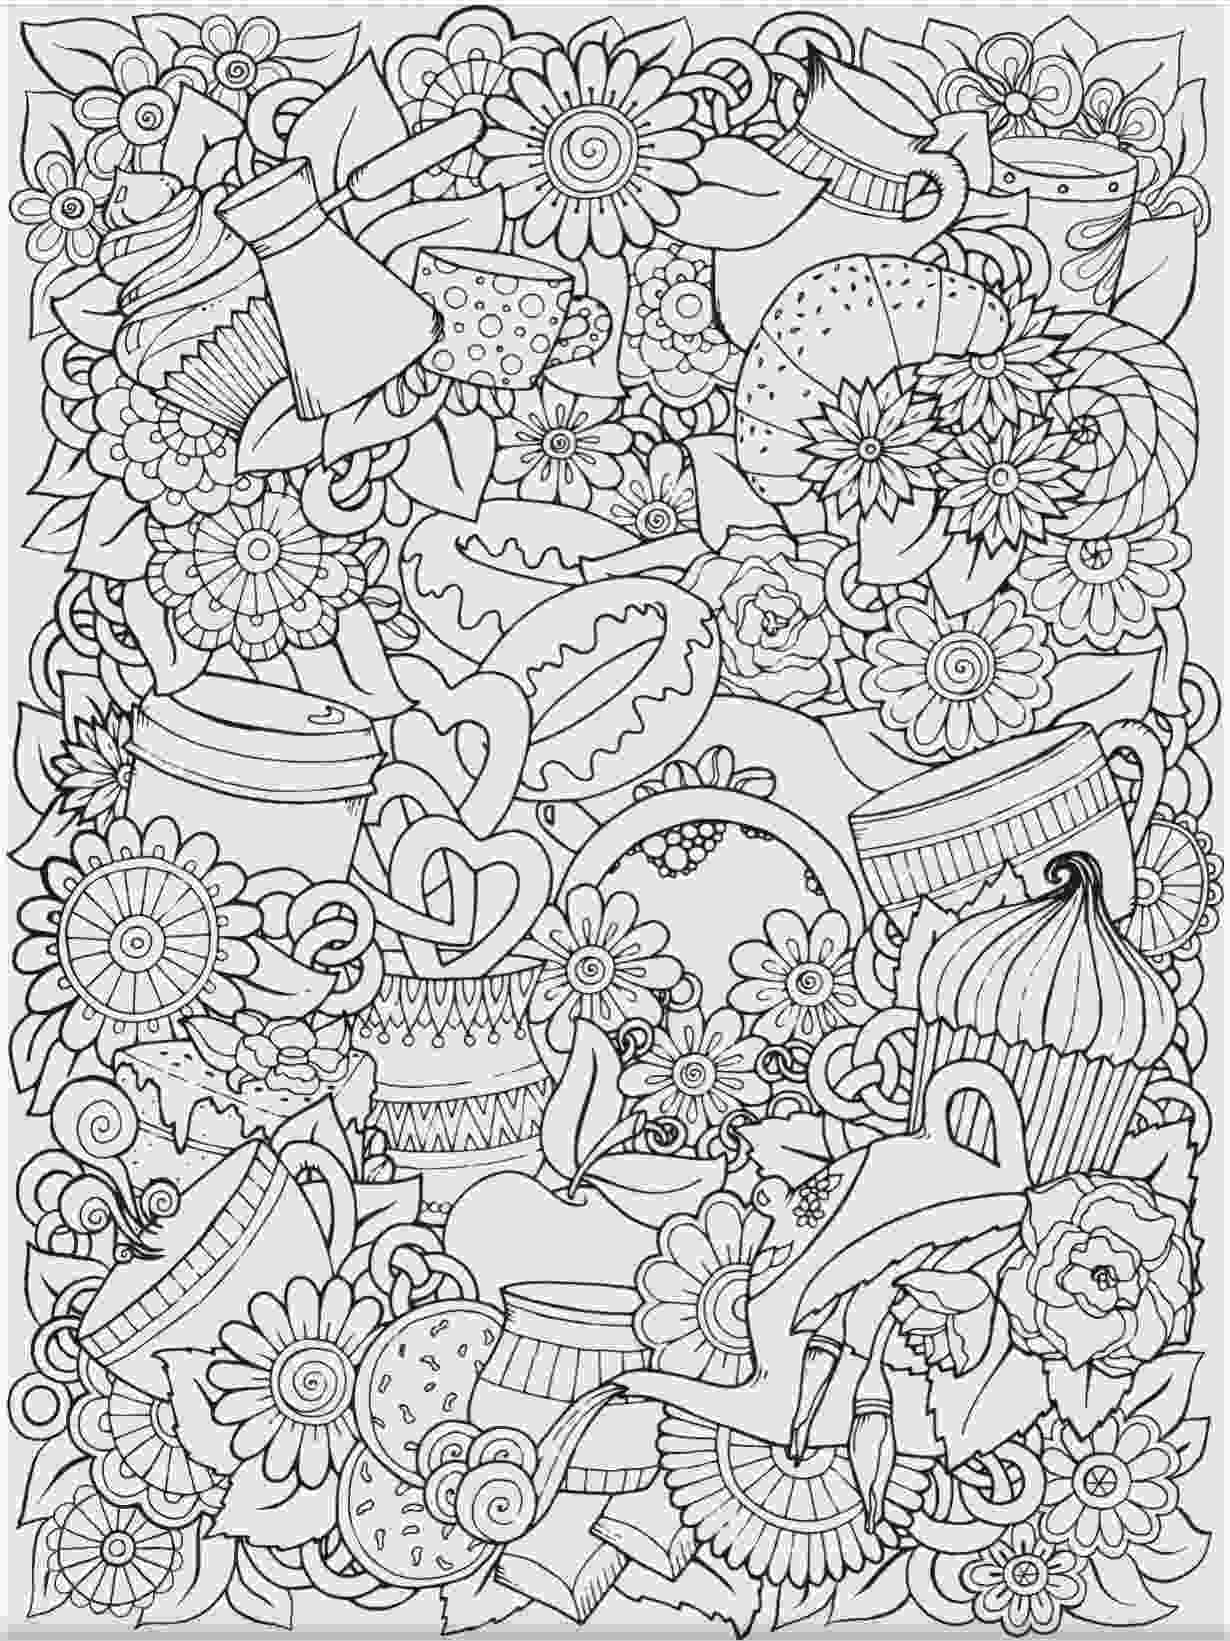 coloring sheet adults pin by carol ratliff on relax color cinco coloring